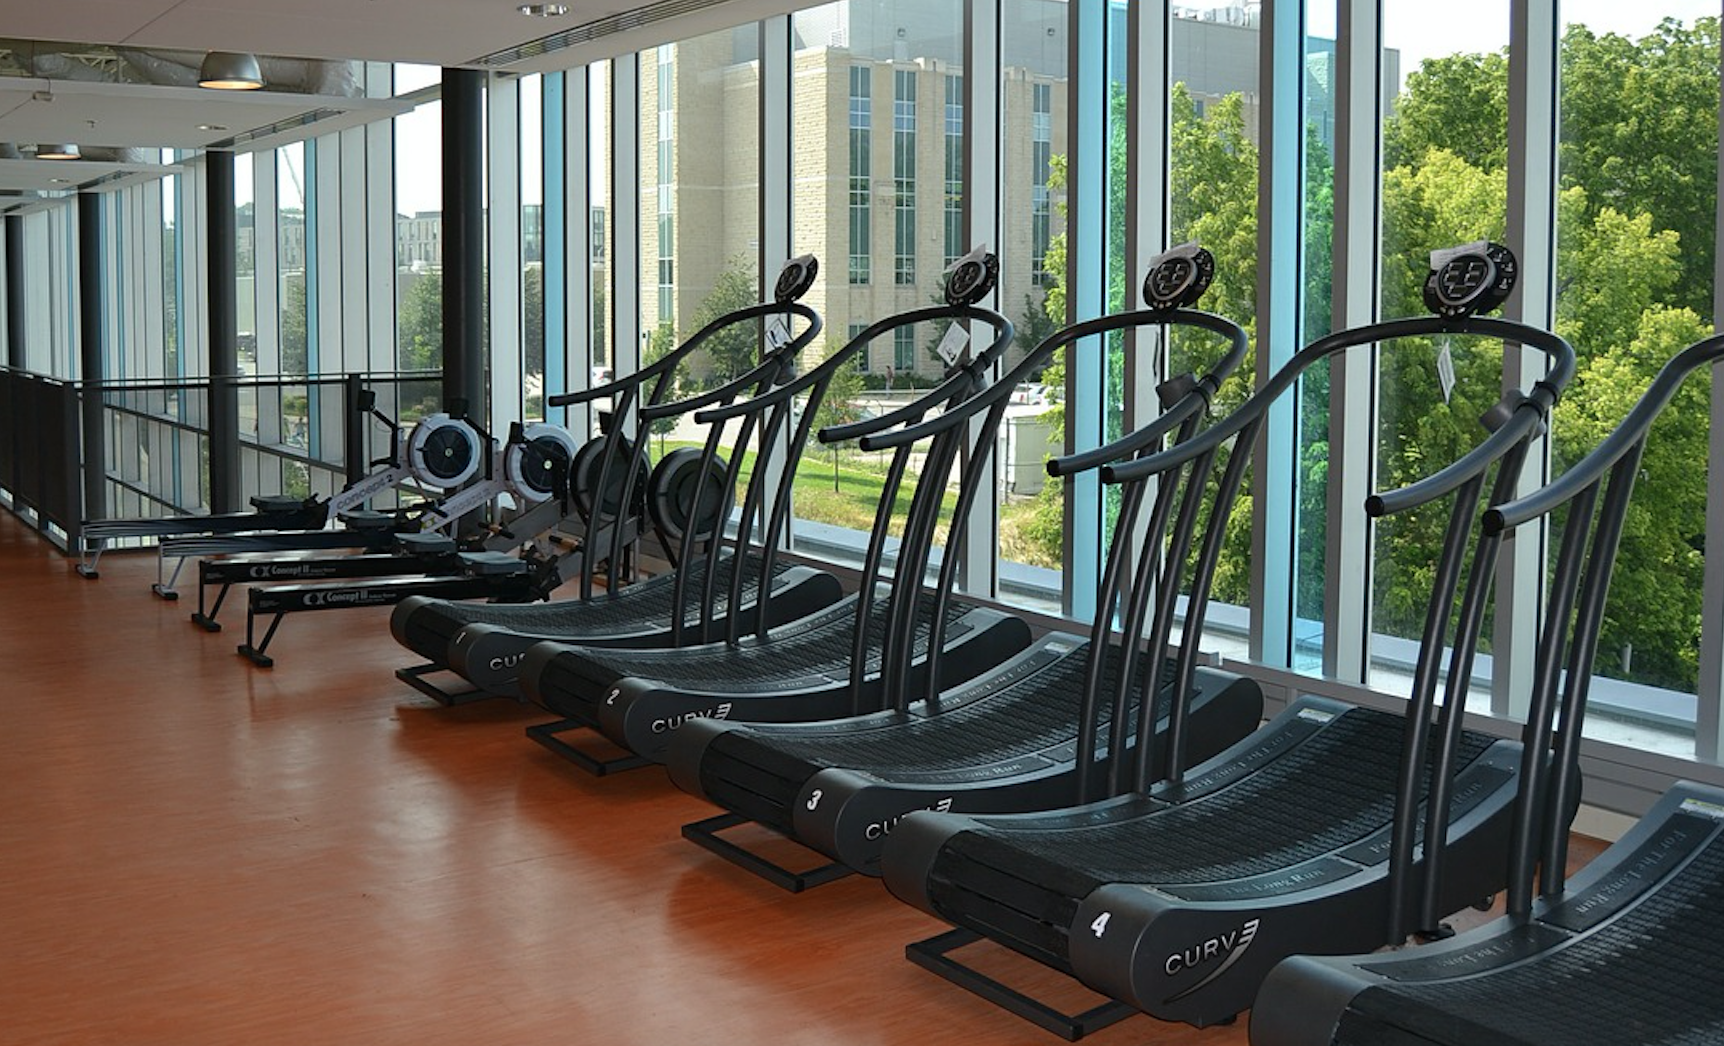 5 Luxury Scottsdale Resorts to Get Your Fitness On